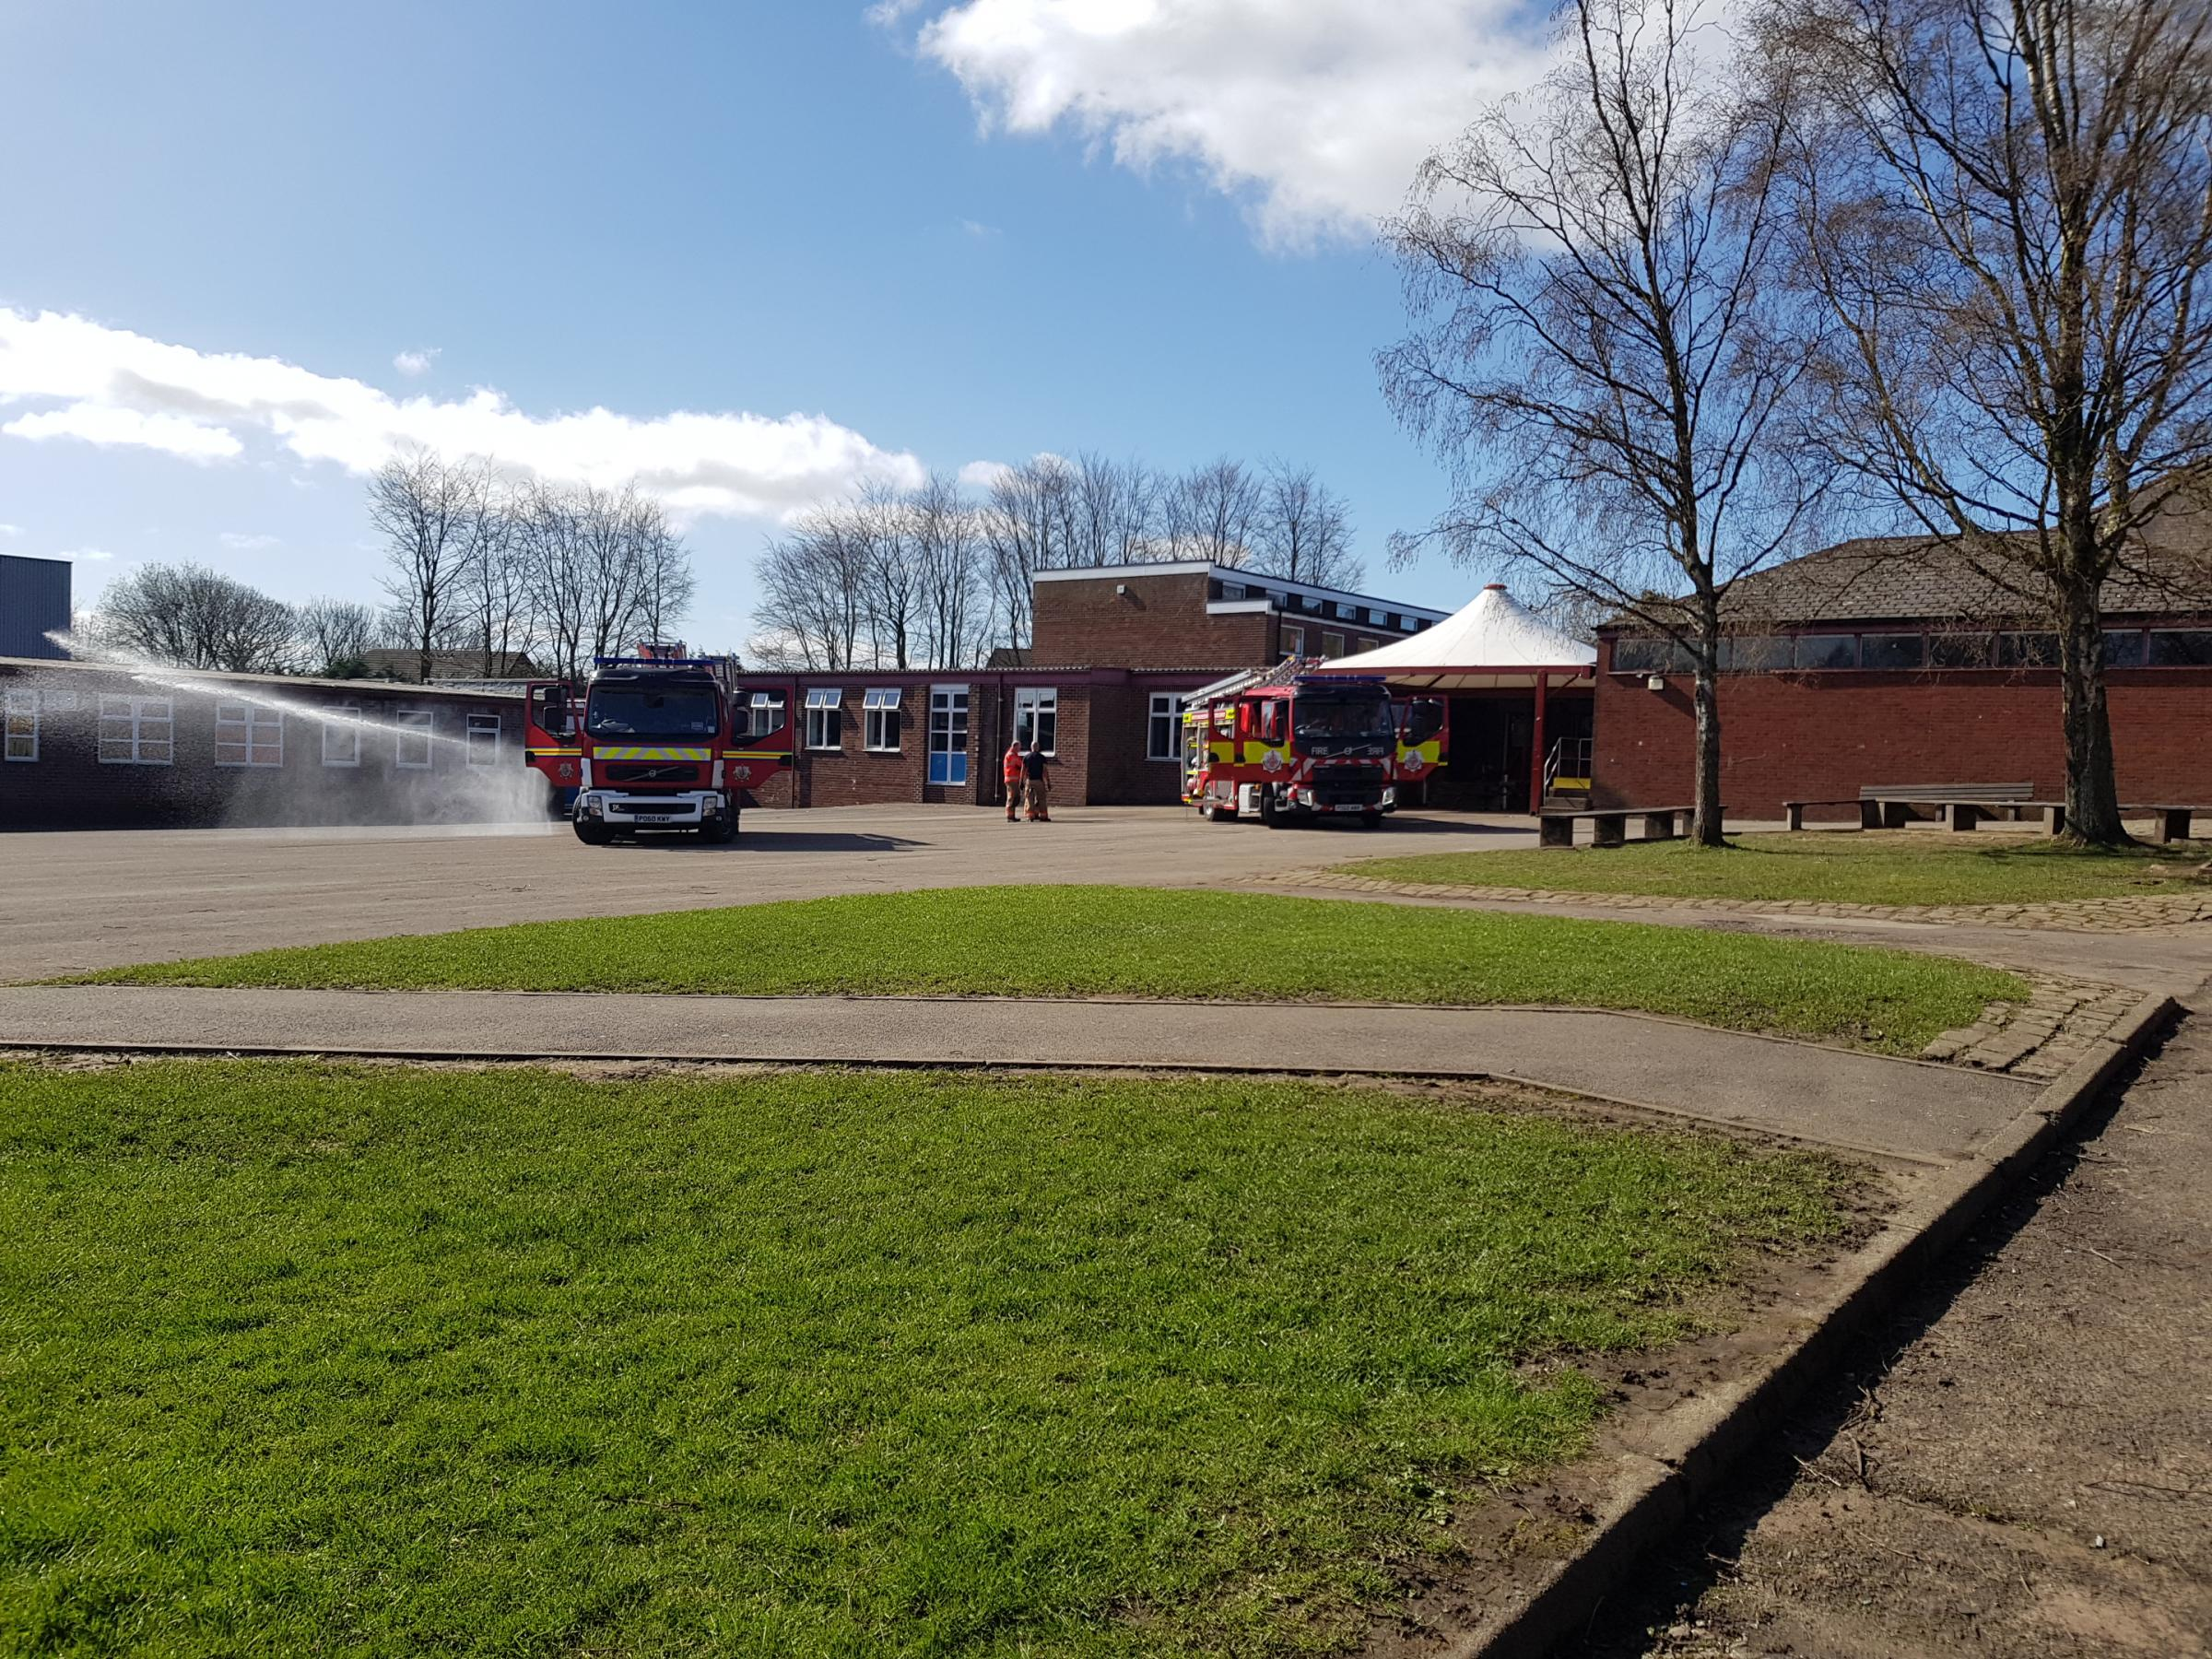 Firefighters were called to Tottington High School this morning